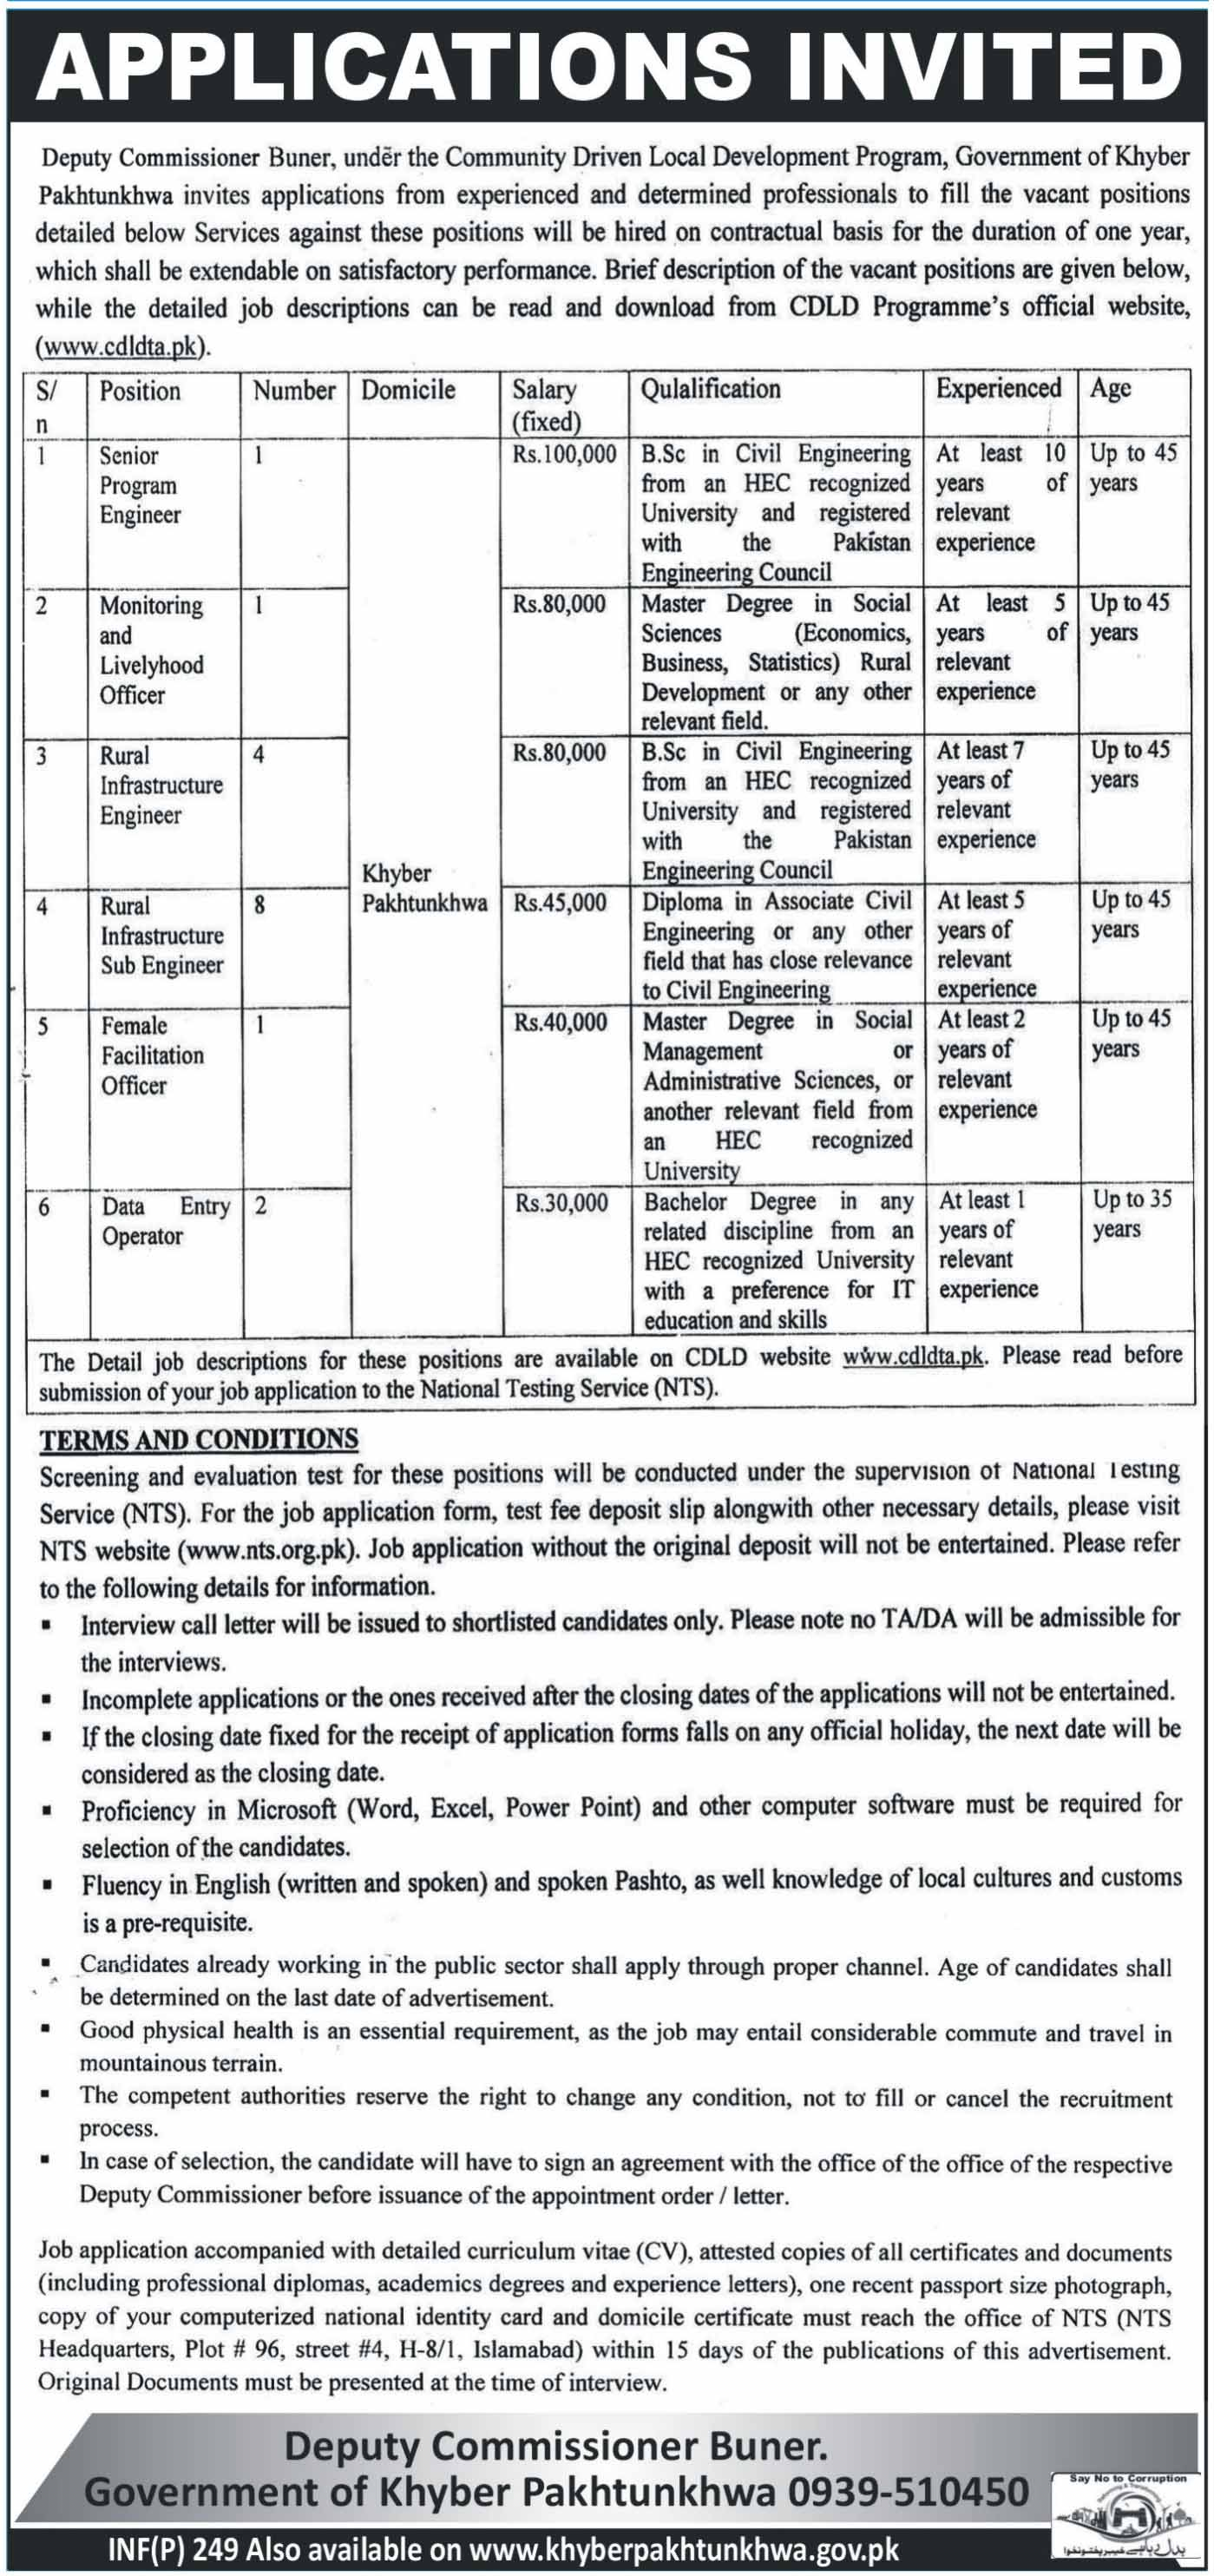 Deputy Commissioner Buner NTS Jobs Ads